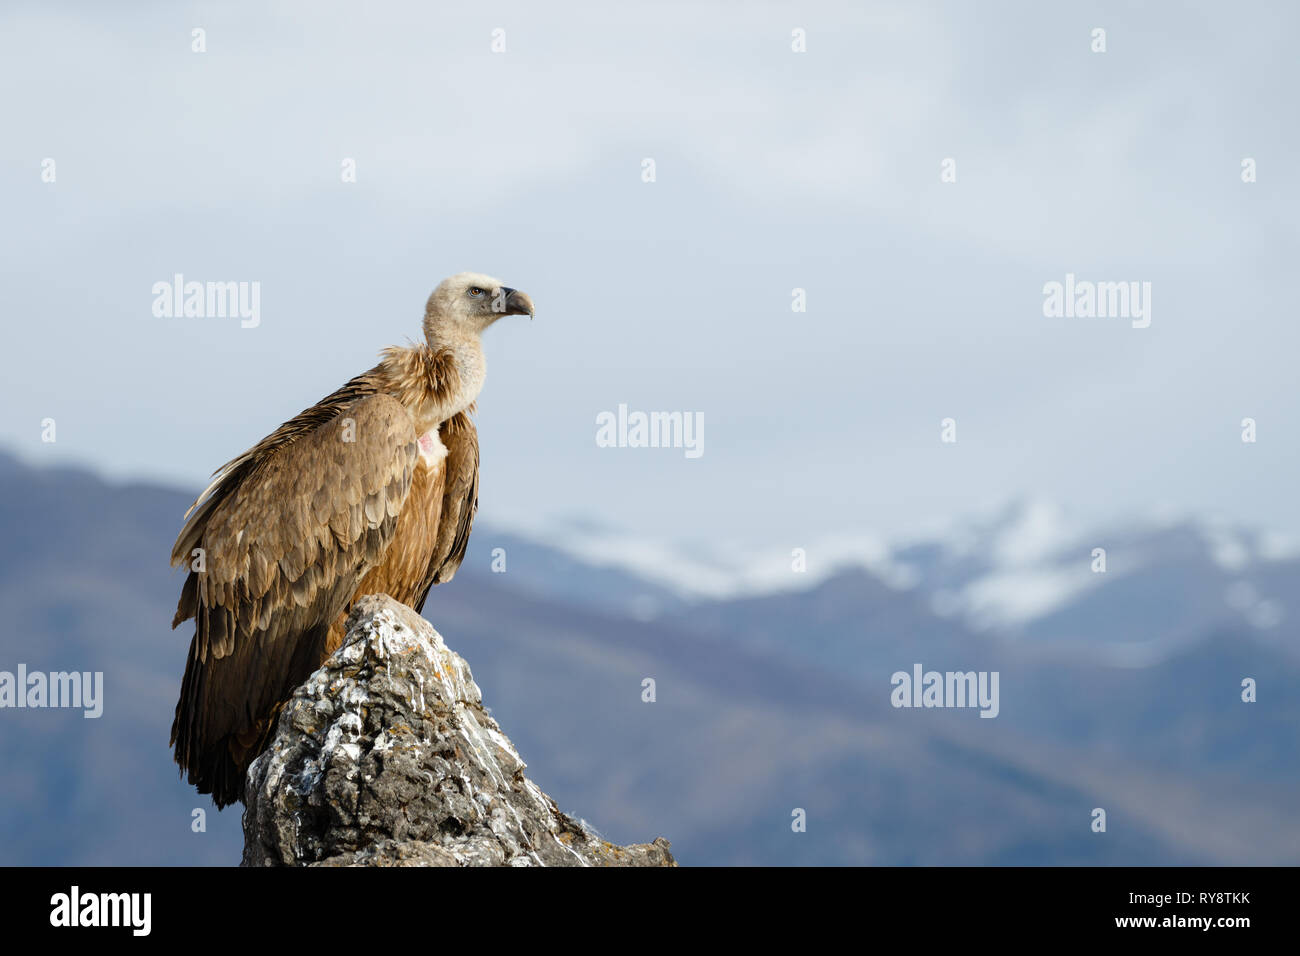 Griffon Vulture (Gyps fulvus), perched on a rock in Aragonese Pyrenees, Aragon, Spain Stock Photo